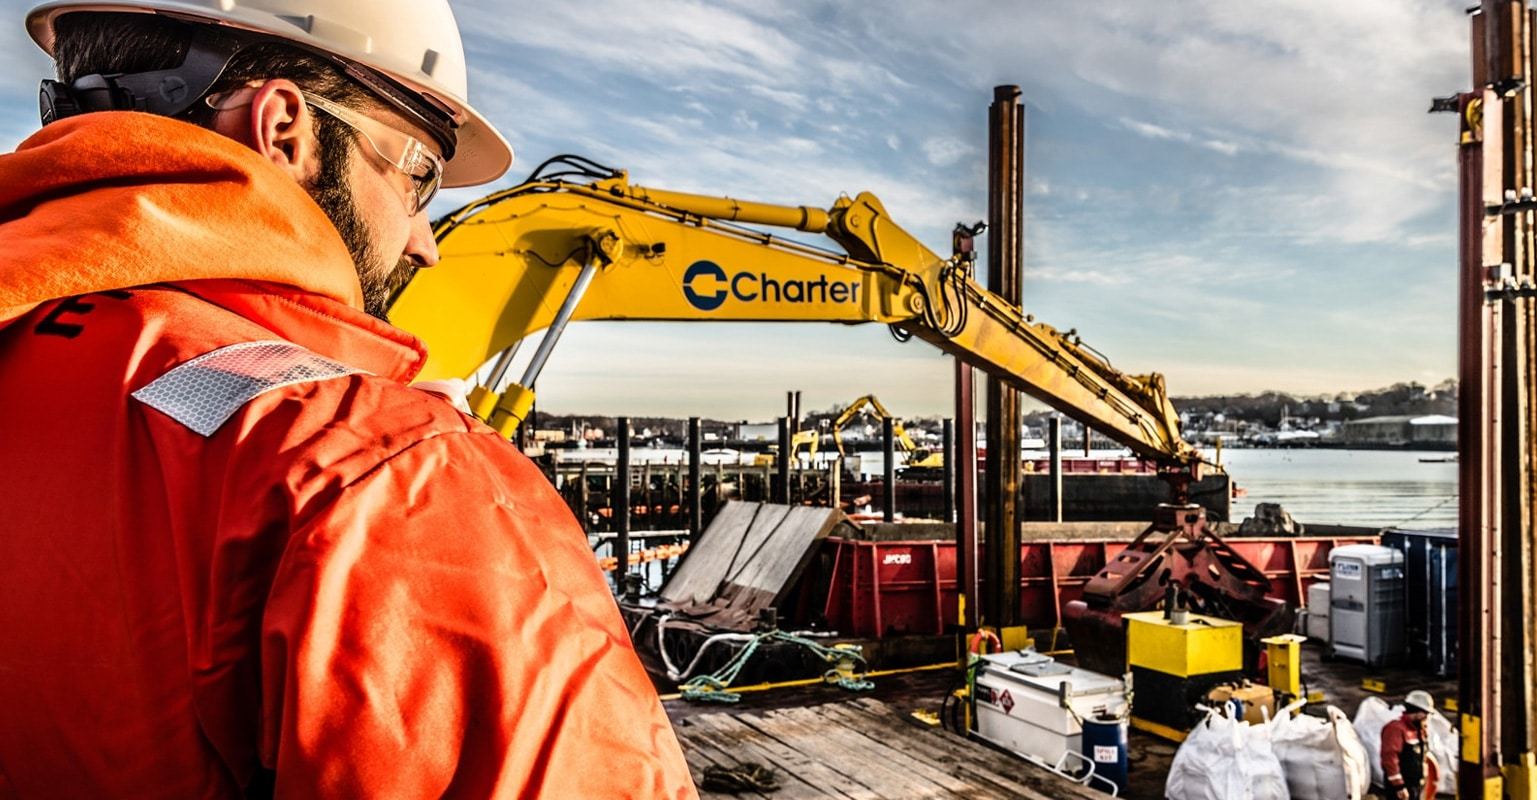 charter contracting header image